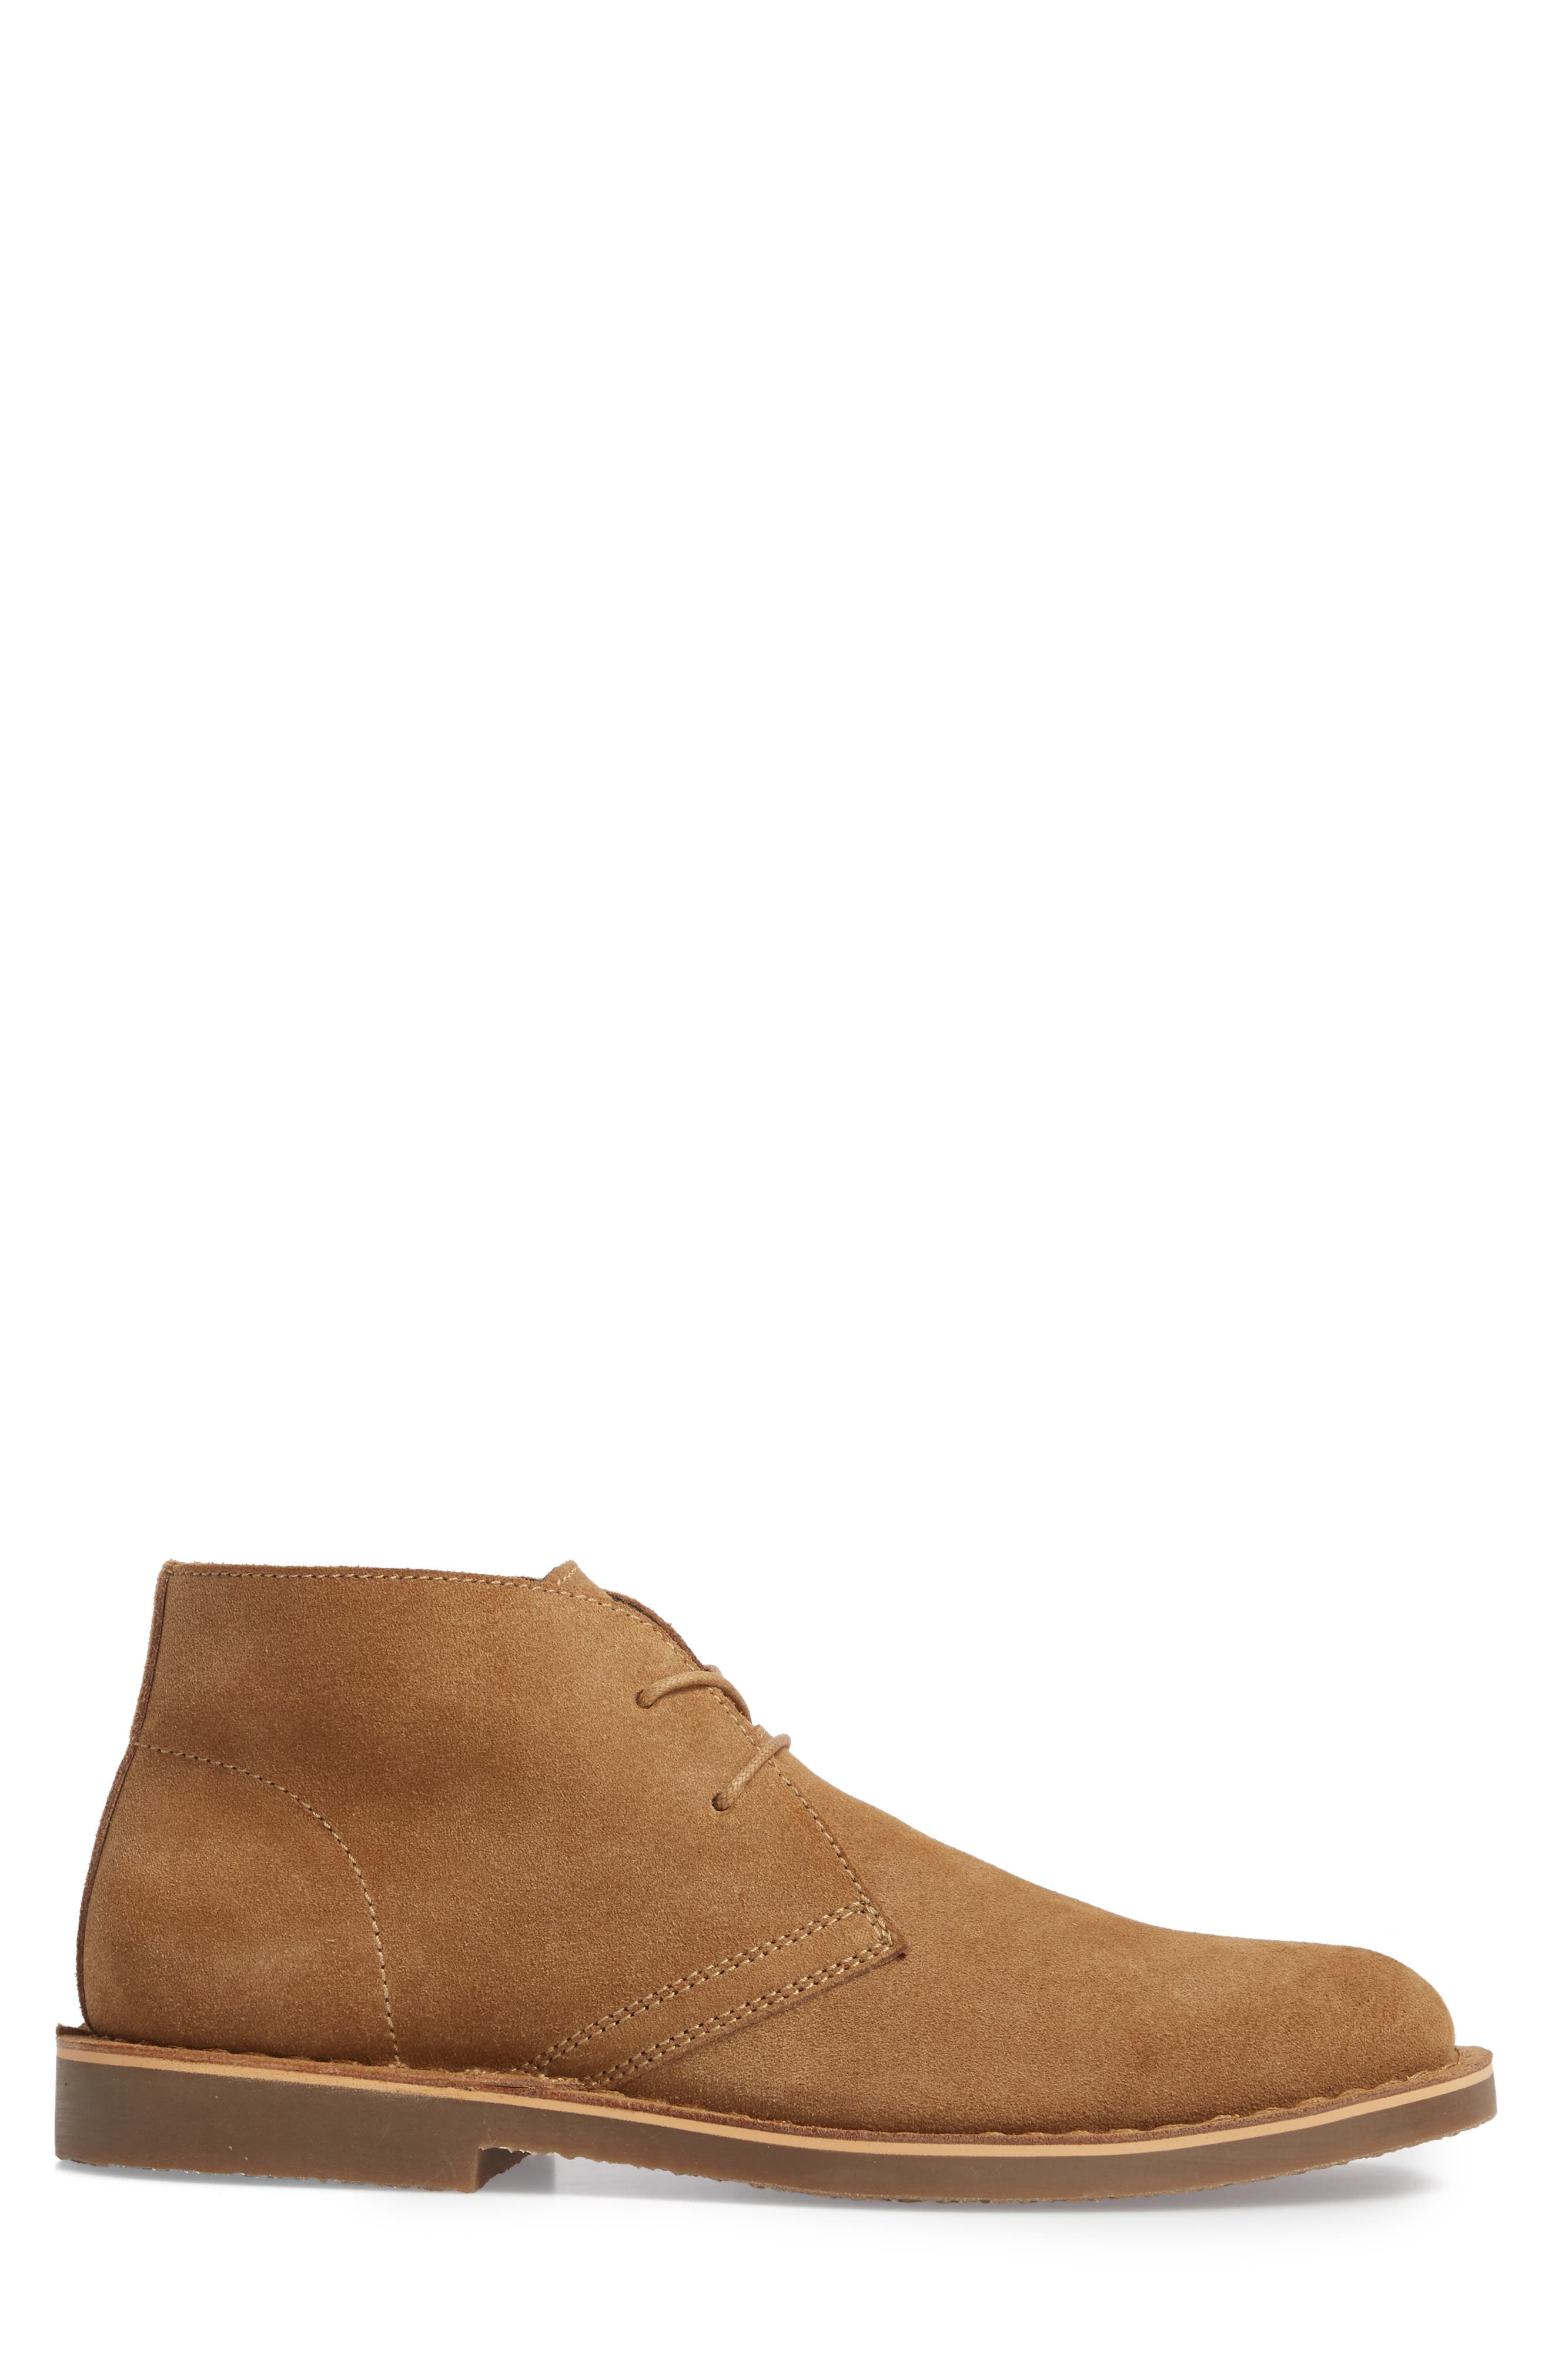 Tempe Chukka Boot,                             Alternate thumbnail 3, color,                             SAND SUEDE